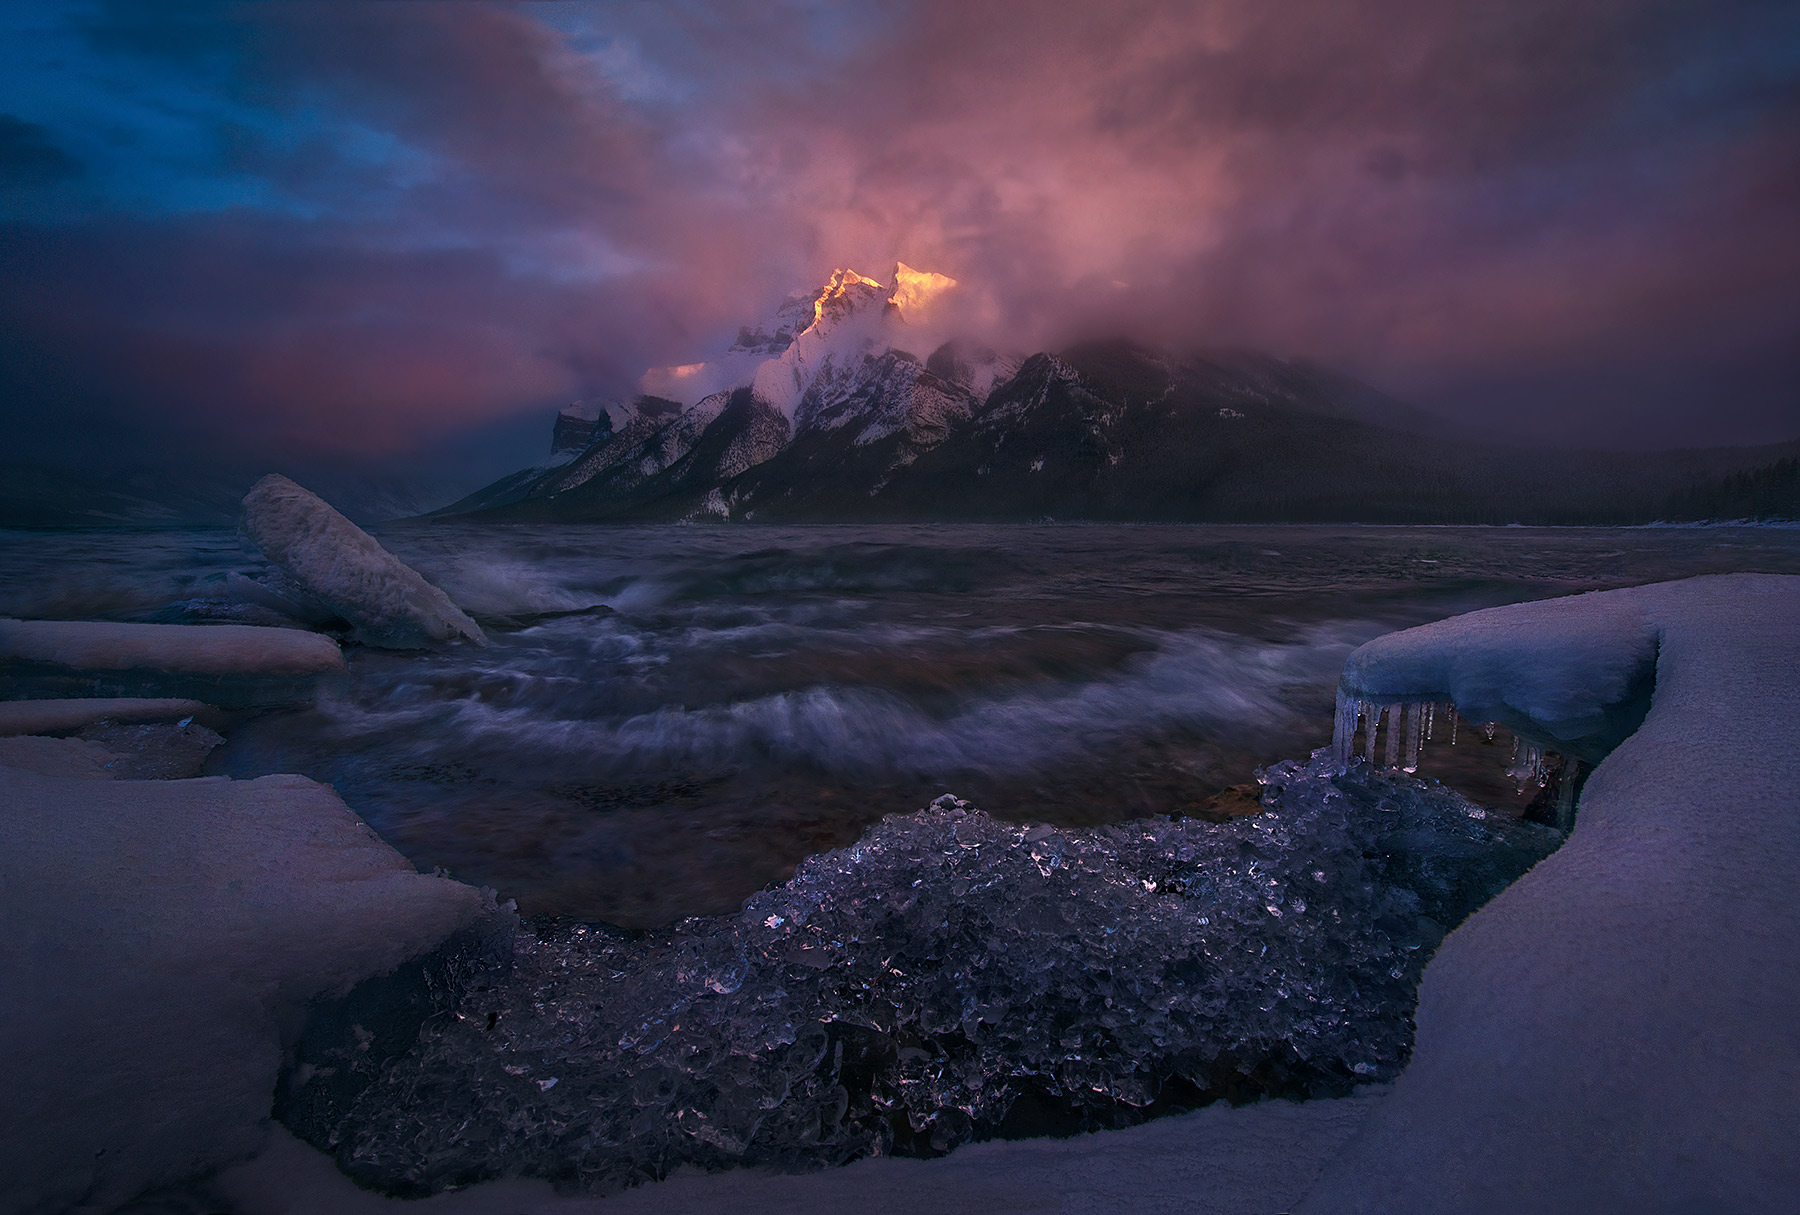 Minnewanka, Canadian Rockies, Storm, Wave, Sunset, Ice, Winter, photo